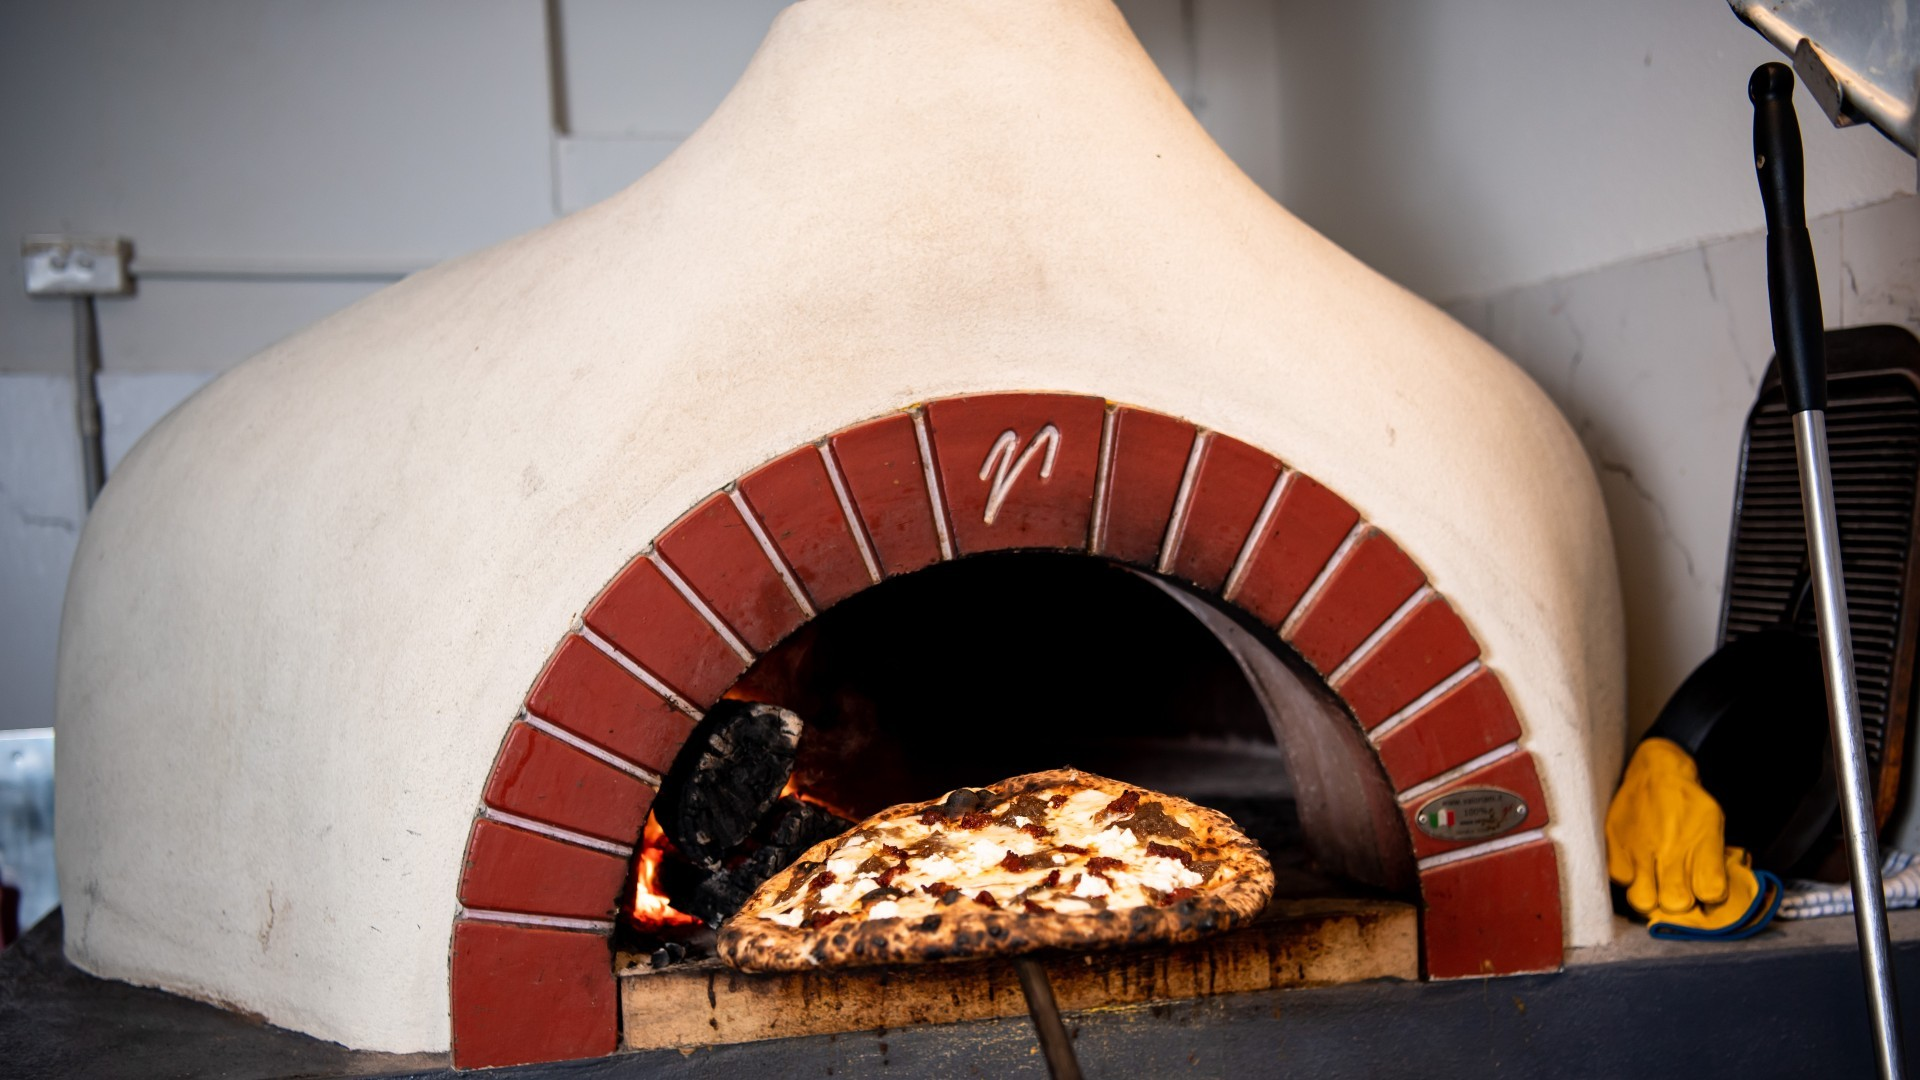 Pizza in a clay pizza oven